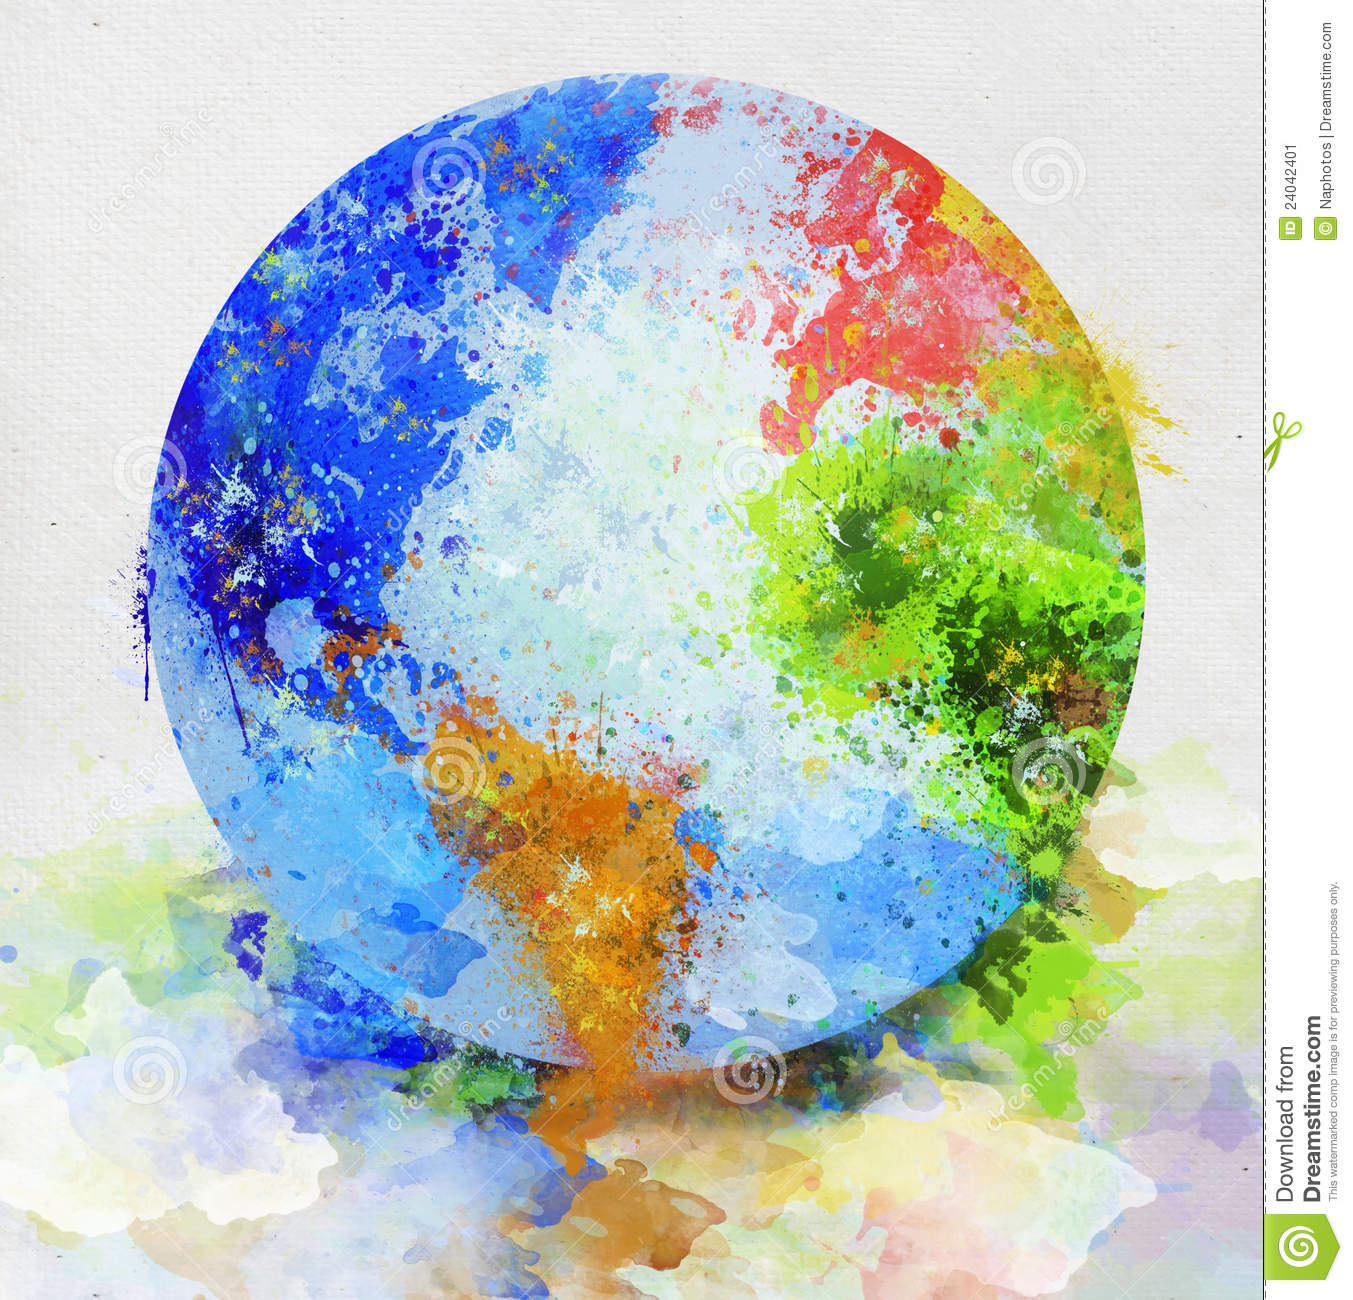 Globe Painting Stock Image - Image: 24042401 Earth Map Globe